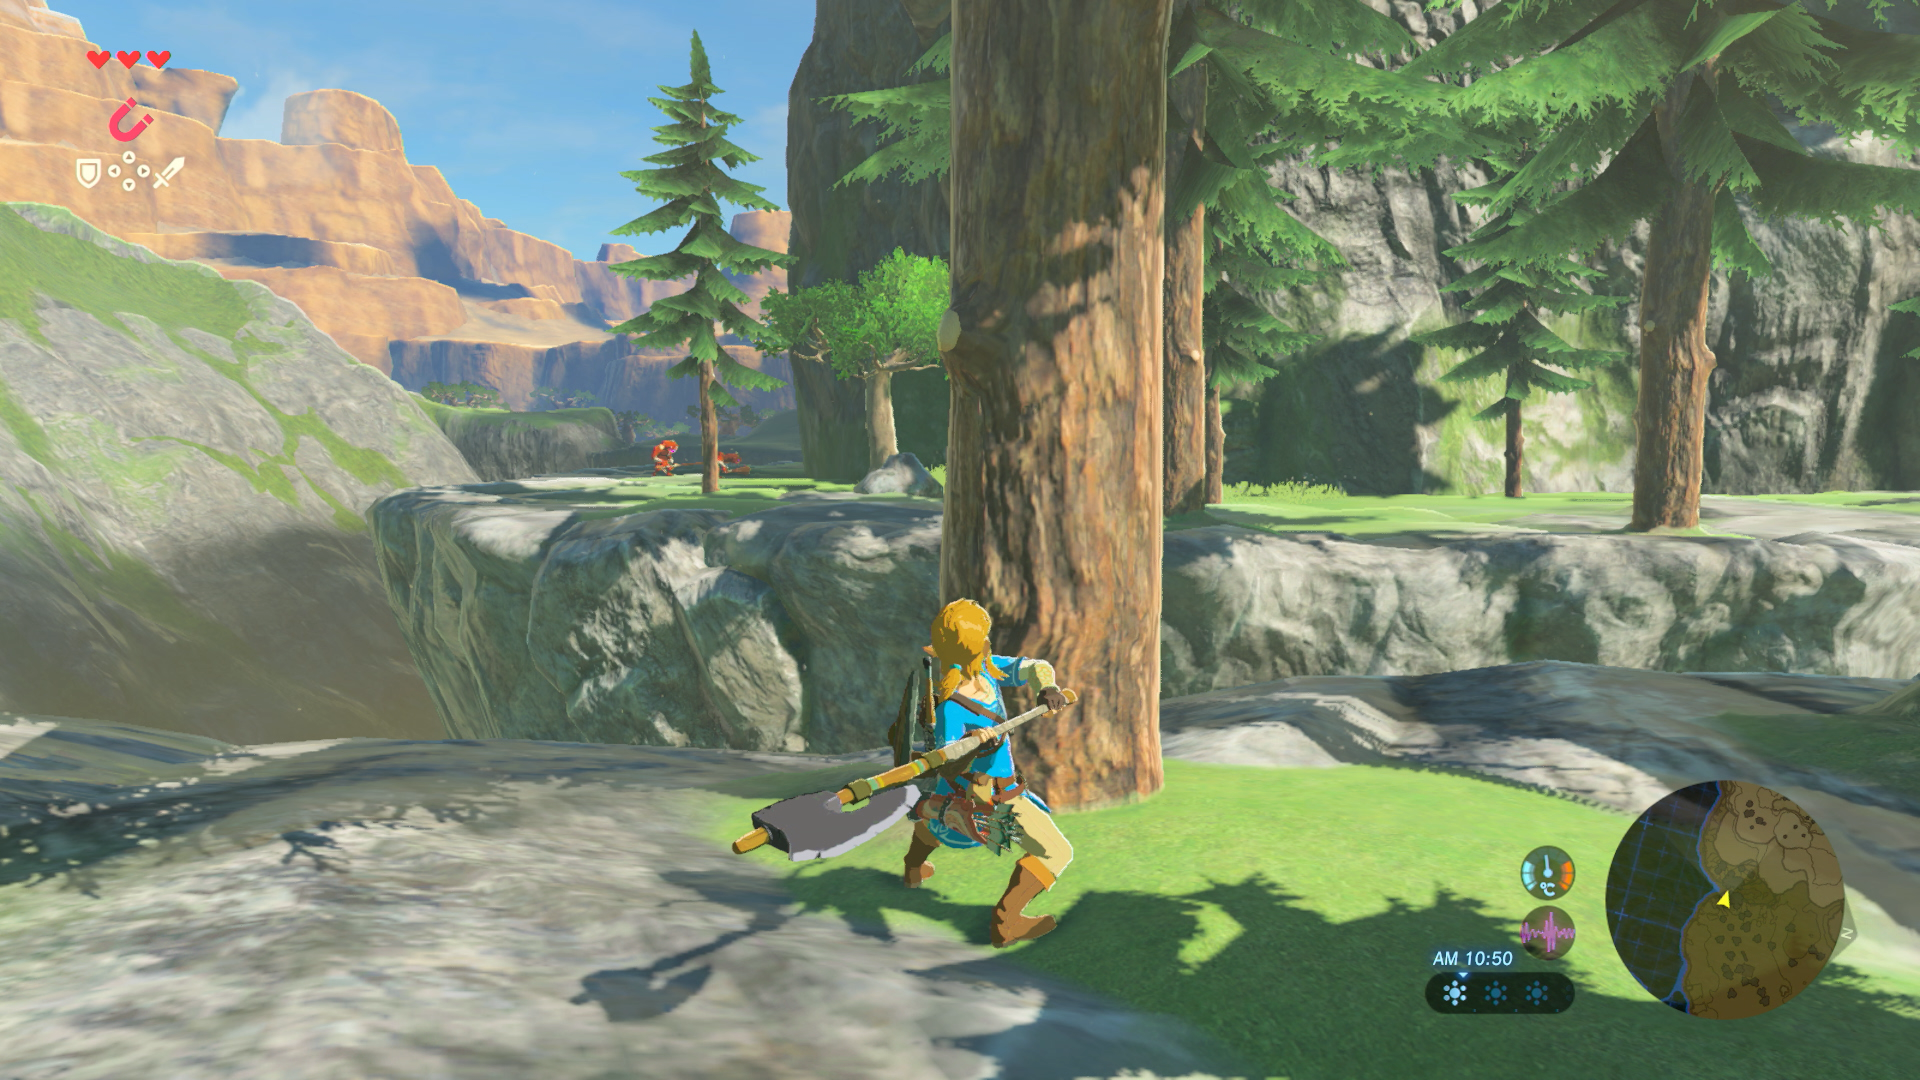 An image of Link from Breath of the Wild swinging a woodcutter's axe, ready to chop down a tree in the game.